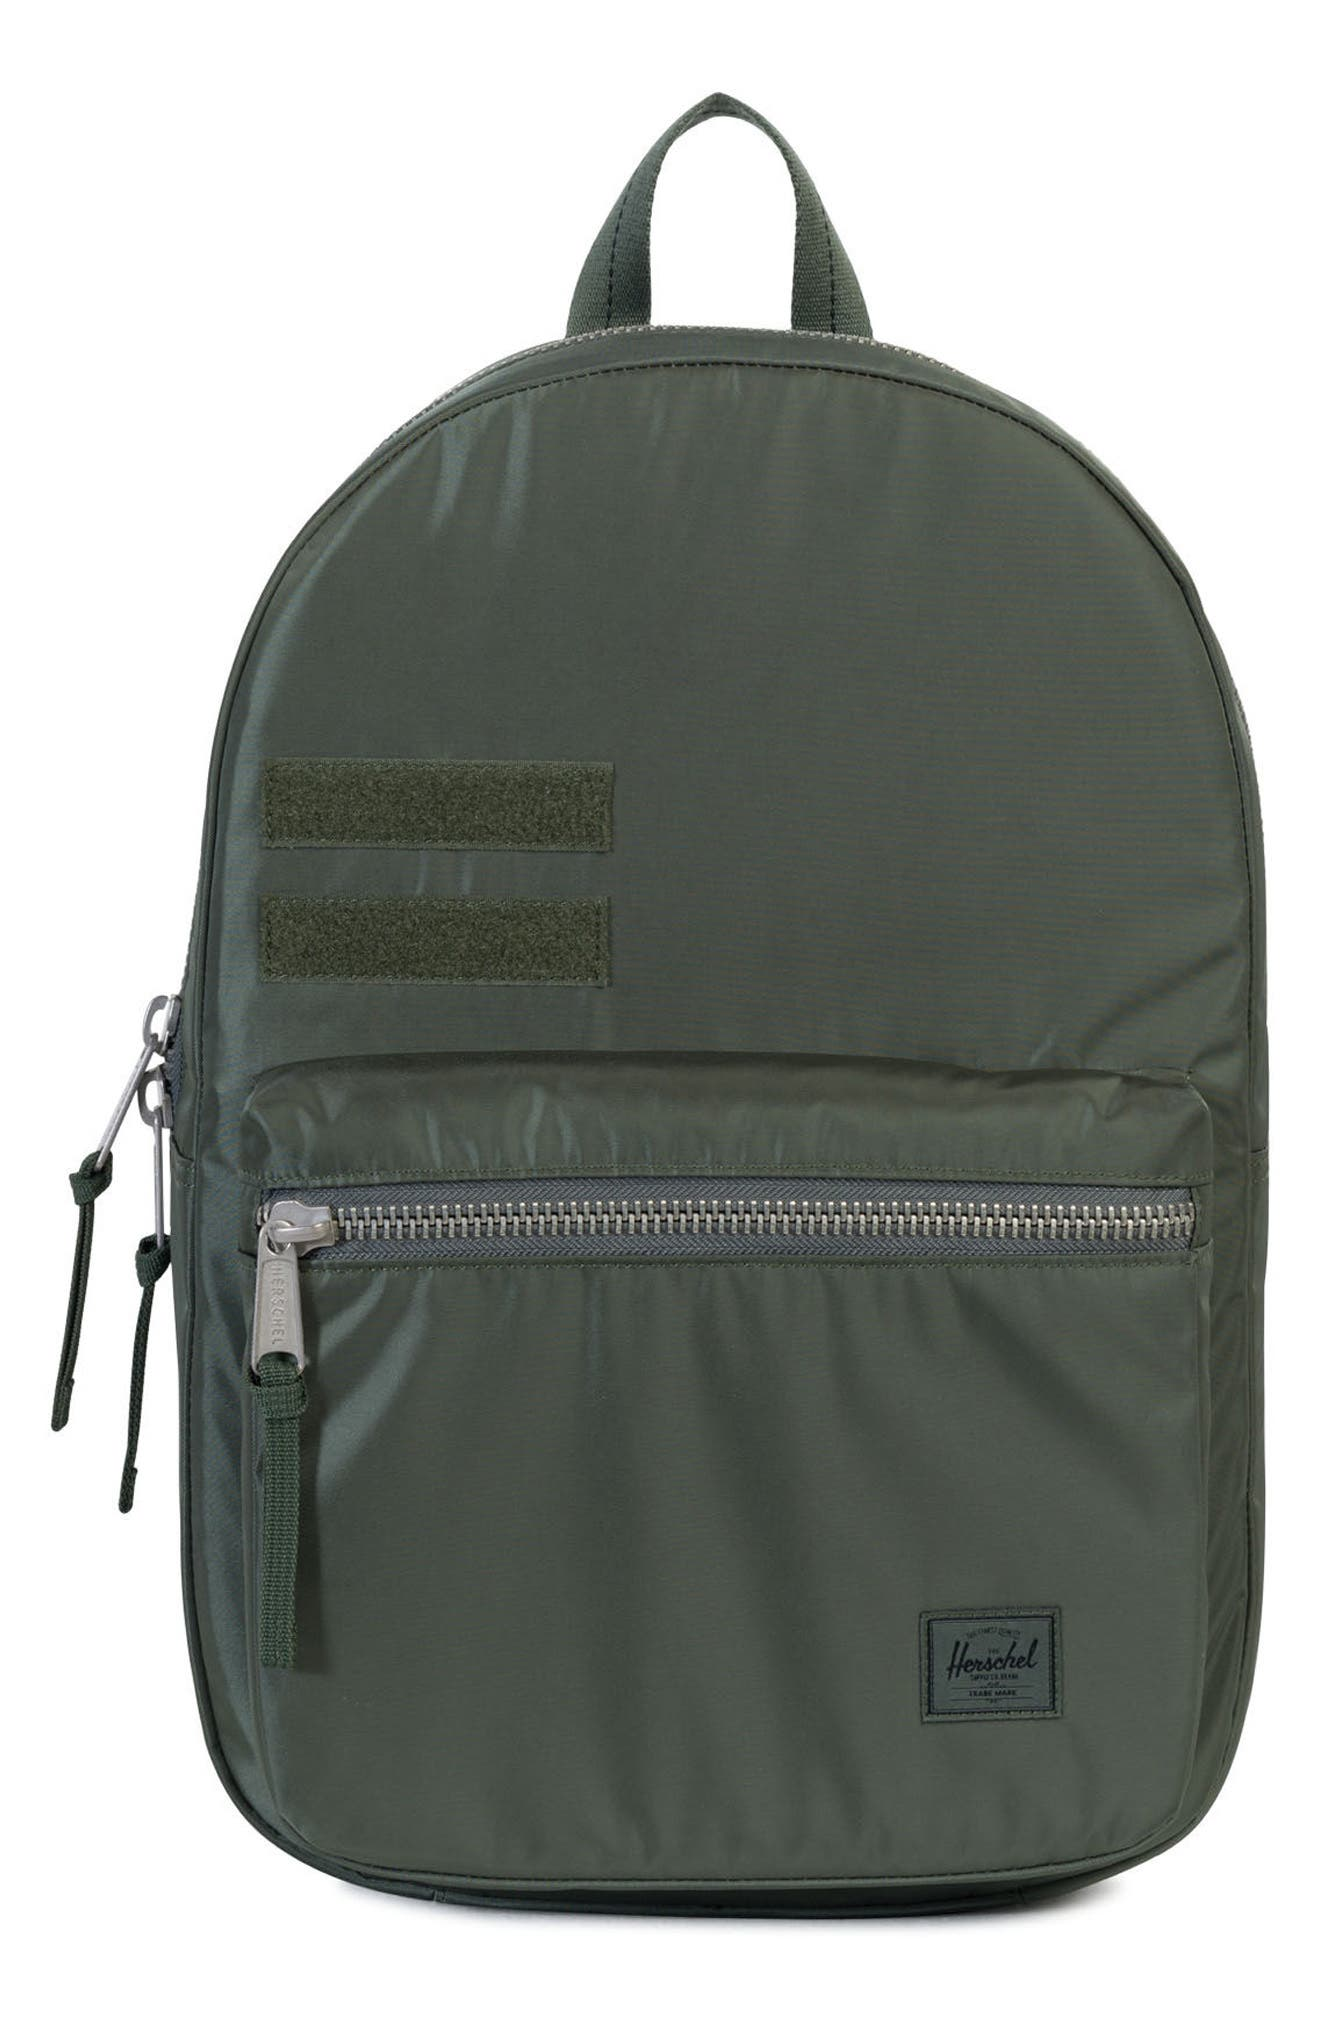 Alternate Image 1 Selected - Herschel Supply Co. Lawson Surplus Collection Backpack